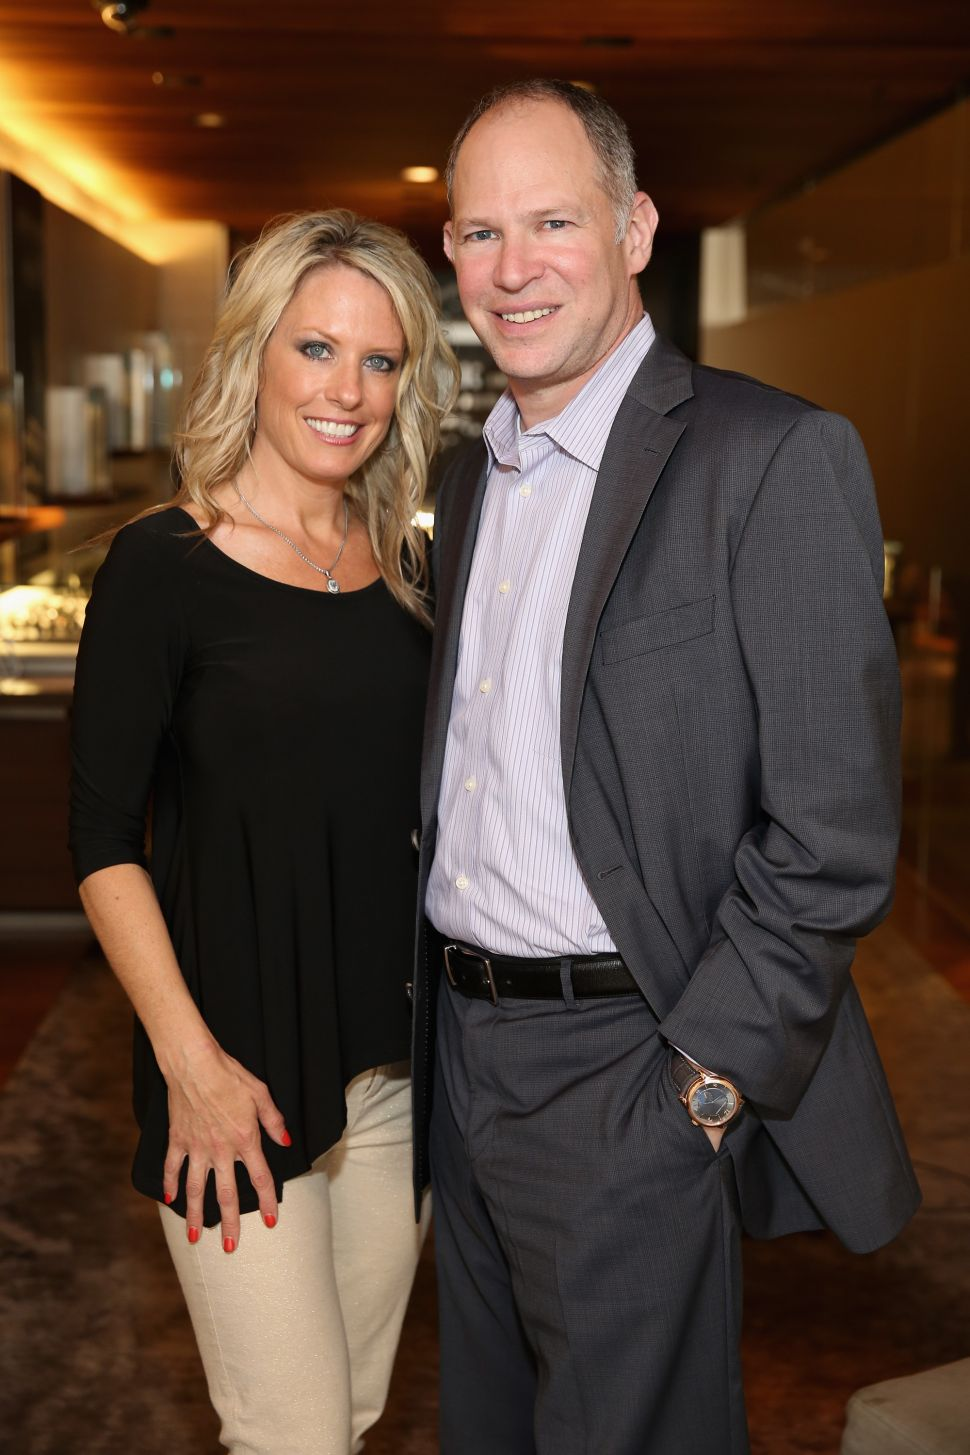 Jewelry and Sports Unite: David Yurman Hosts In-Store Event With ESPN's Matthew Berry